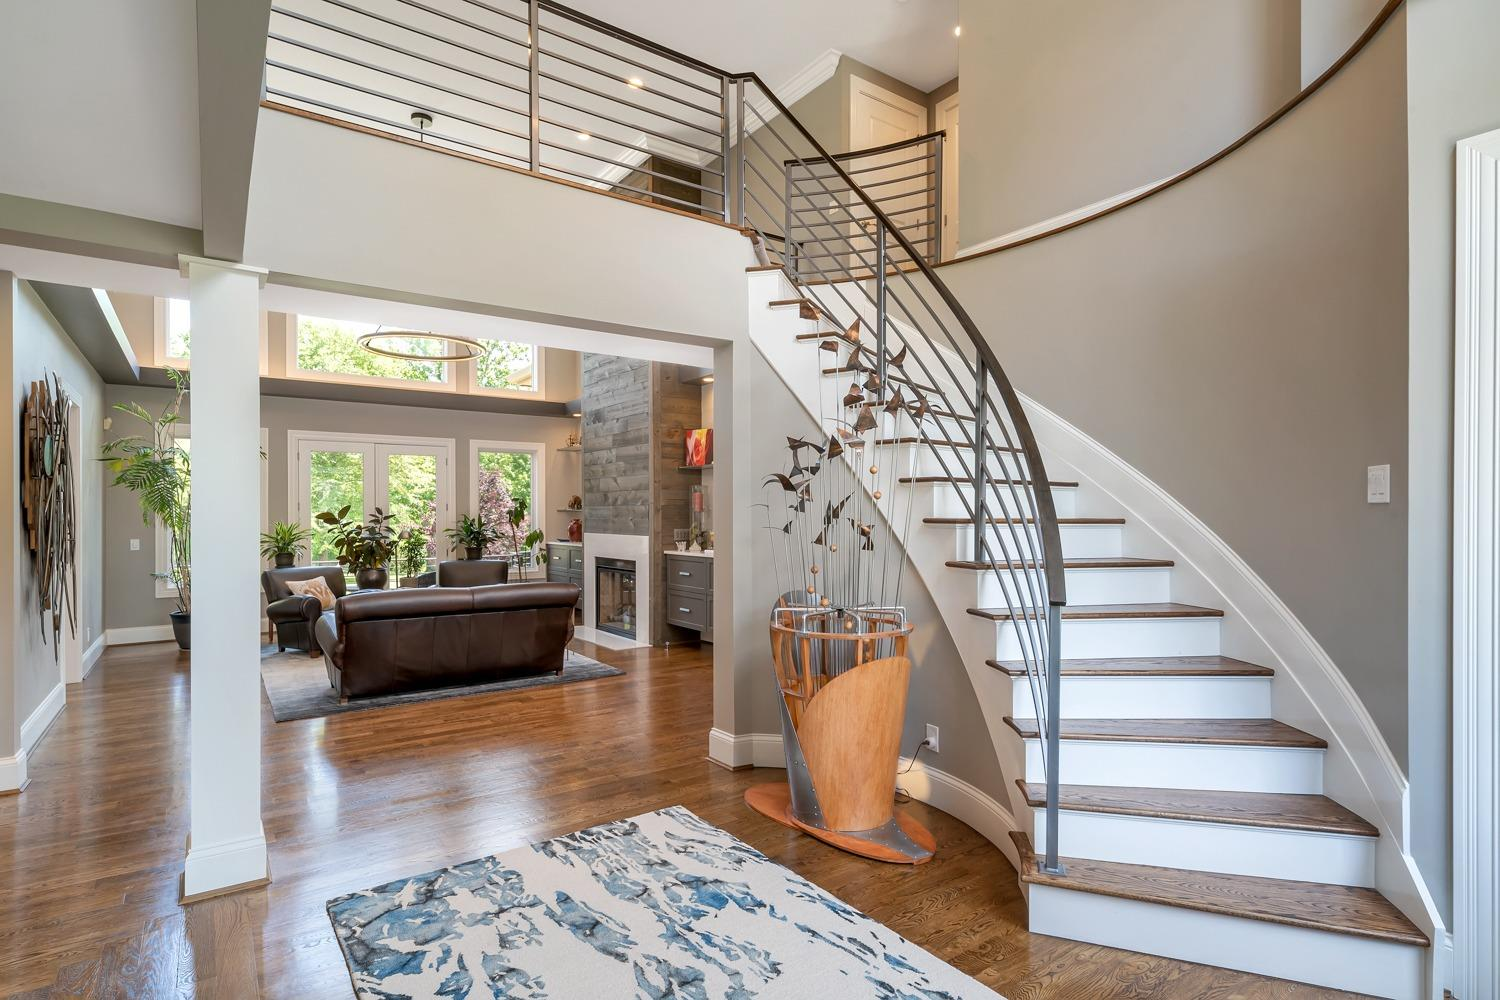 Entry features curved staircase and custom railings by Elegant Iron.